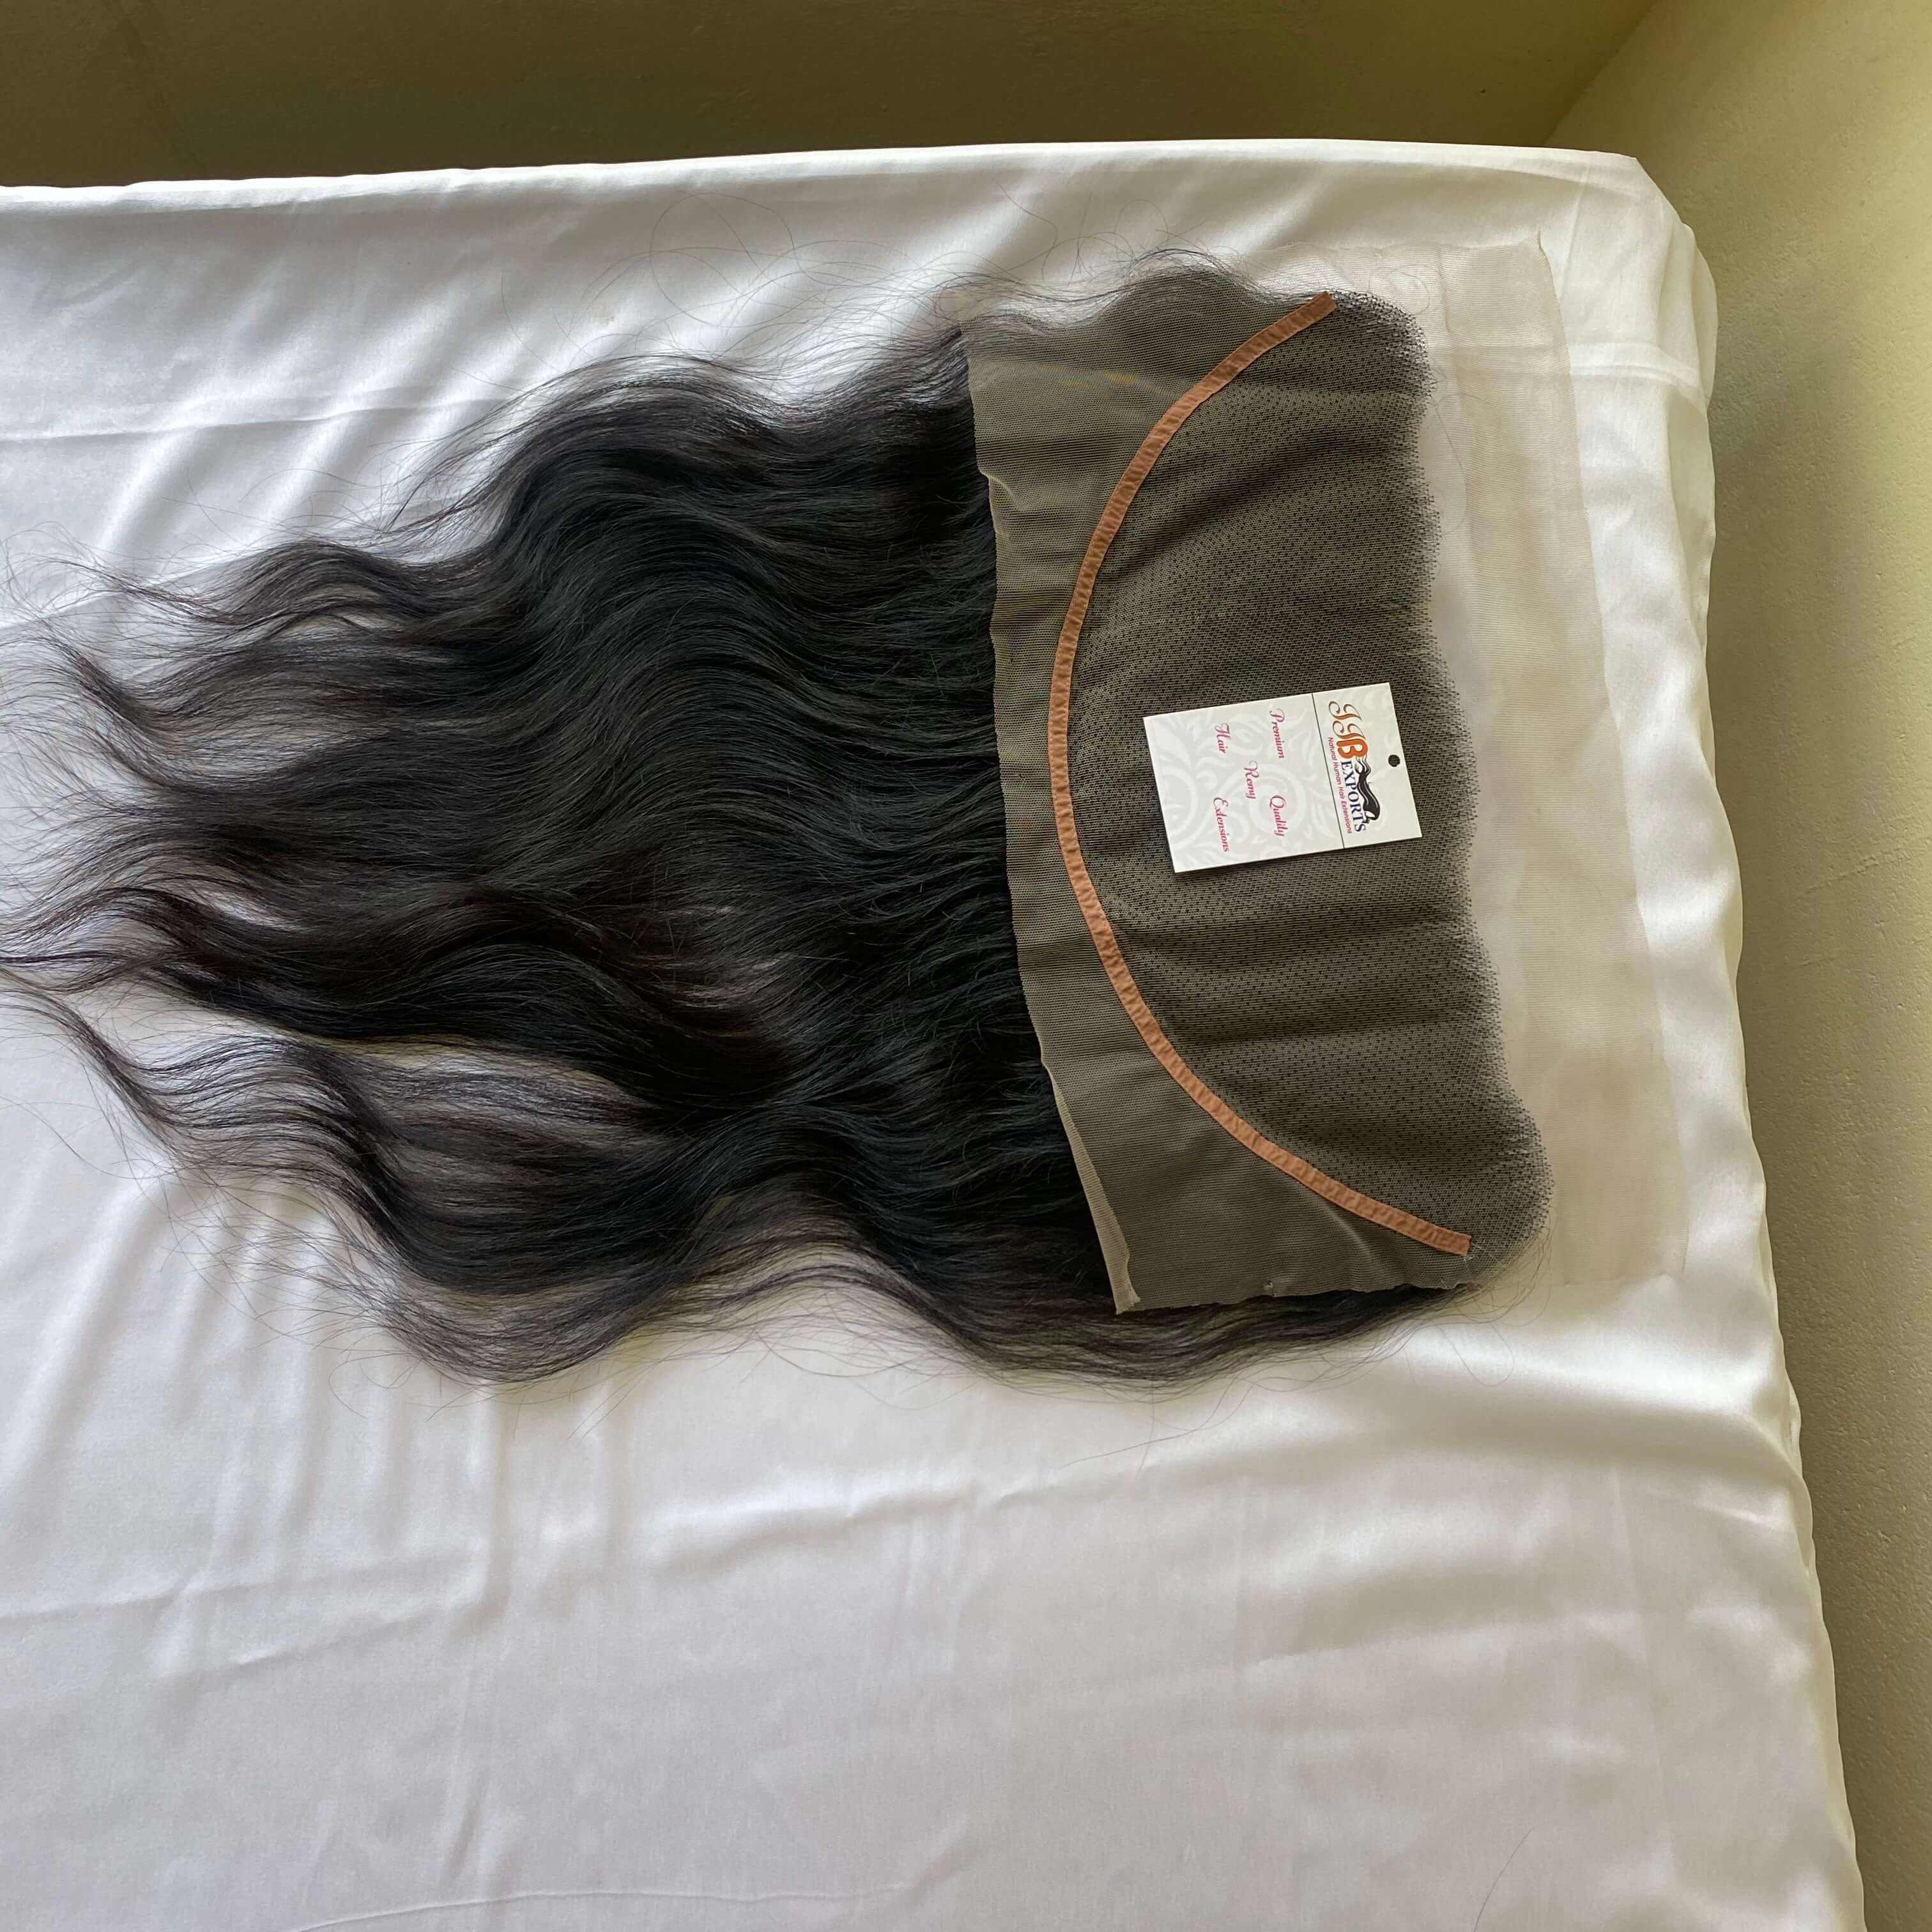 Cuticle Aligned Raw Virgin Hair Hd Lace Closures And 13x4 Frontals With Hair Bundles